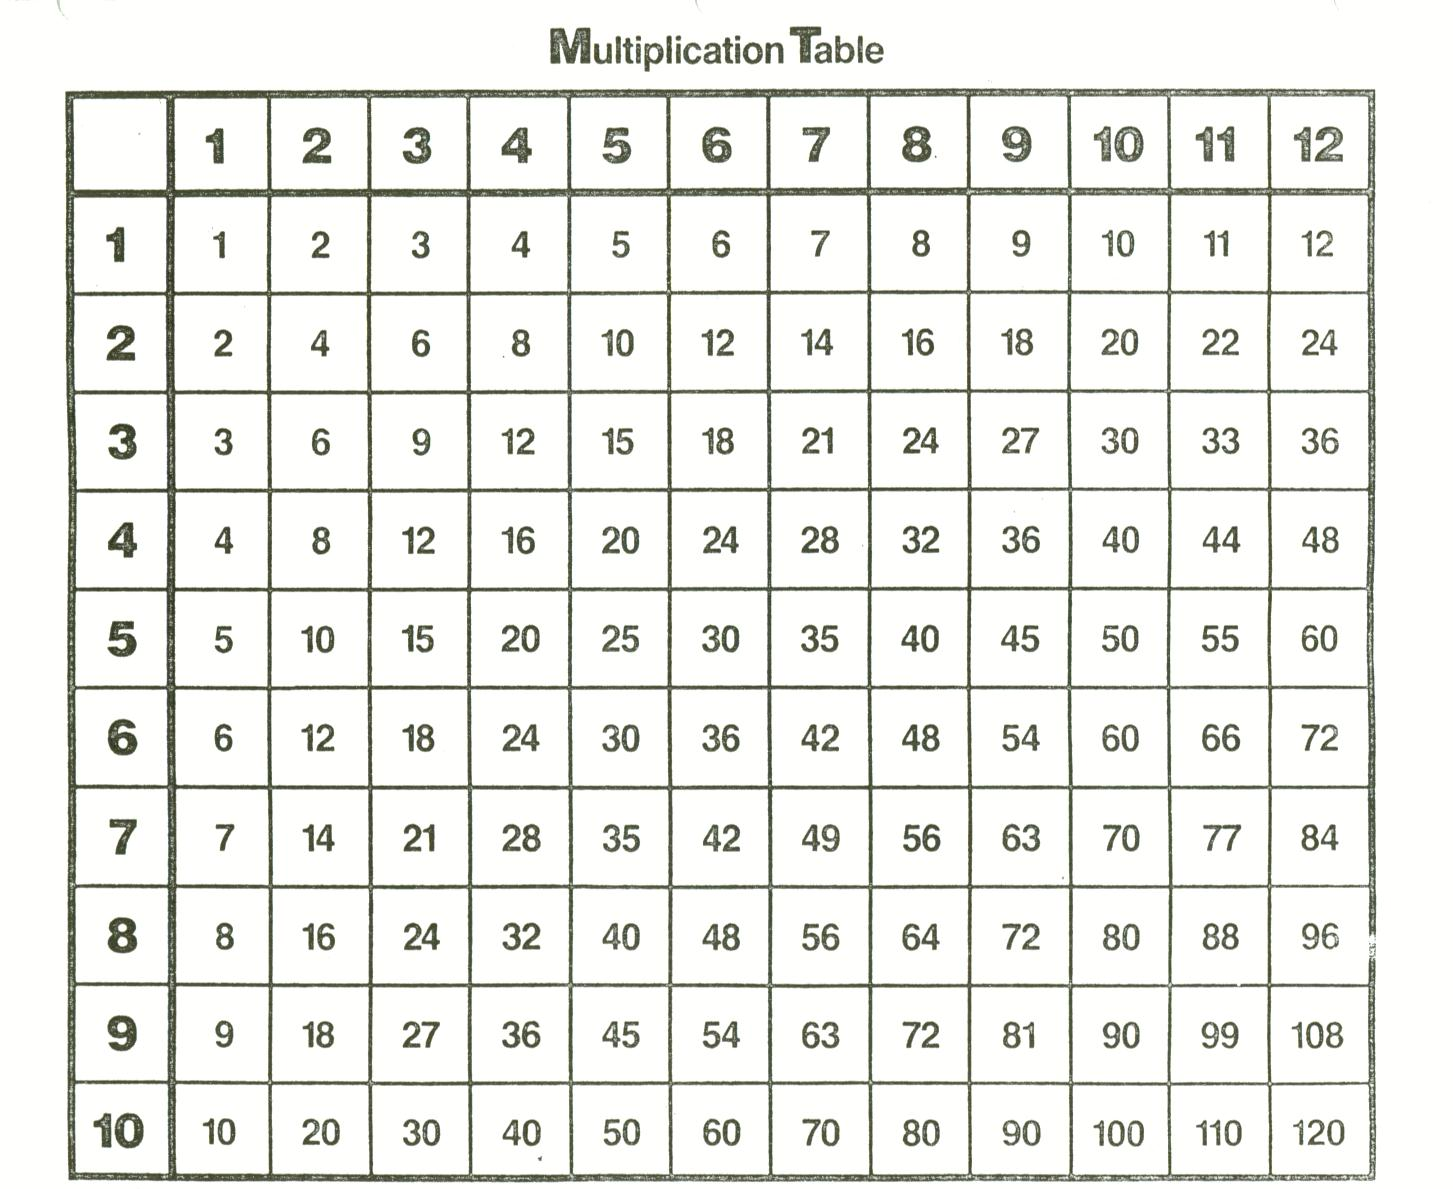 The gallery for multiplication table 100x100 for Table multiplication